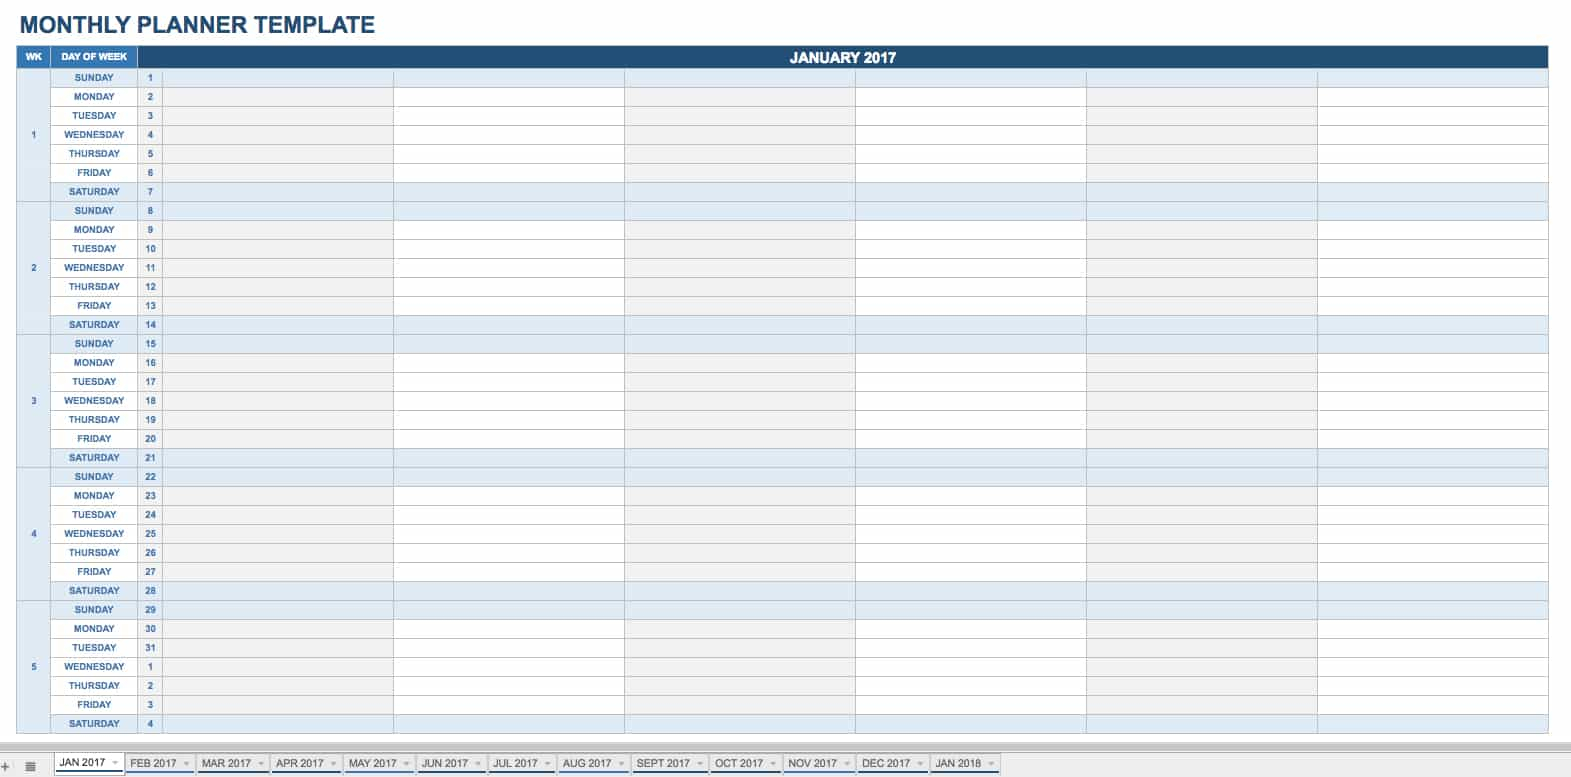 Free Printable Daily Calendar Templates | Smartsheet with Formatable Excel Monthly Calender 2020